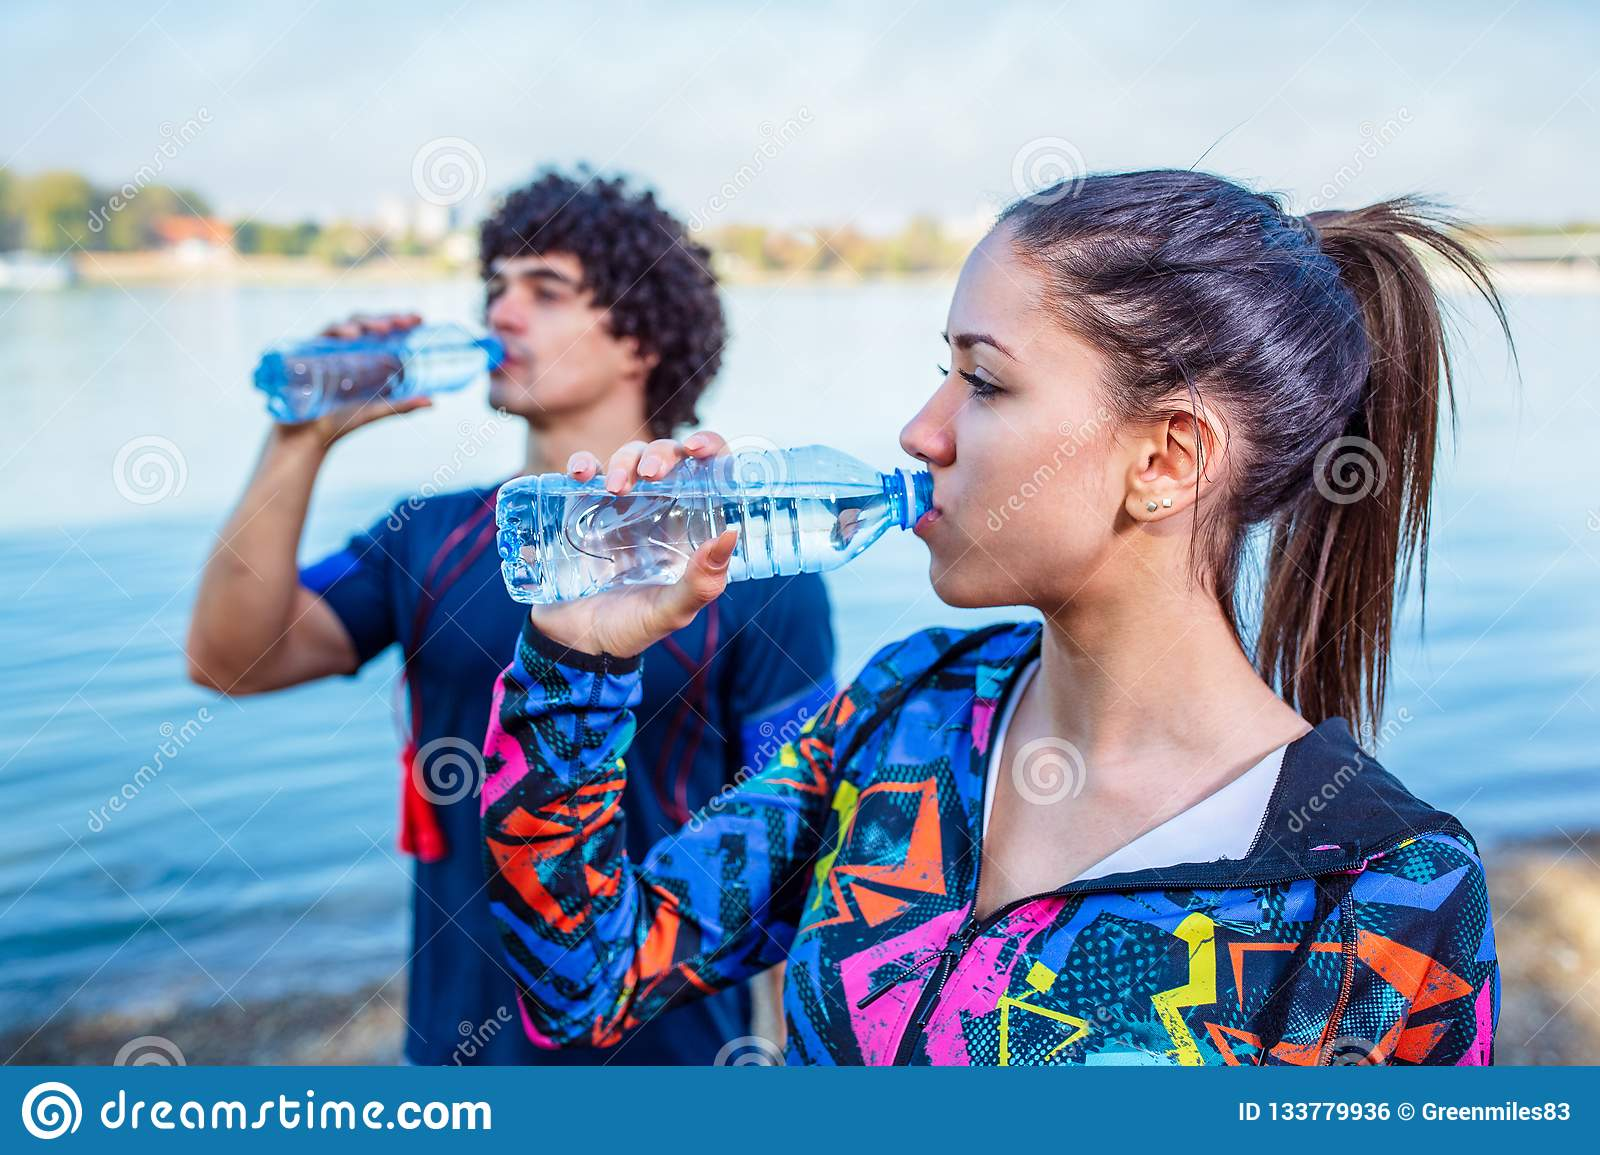 Resting After Workout-Woman drinks water to replenish energy